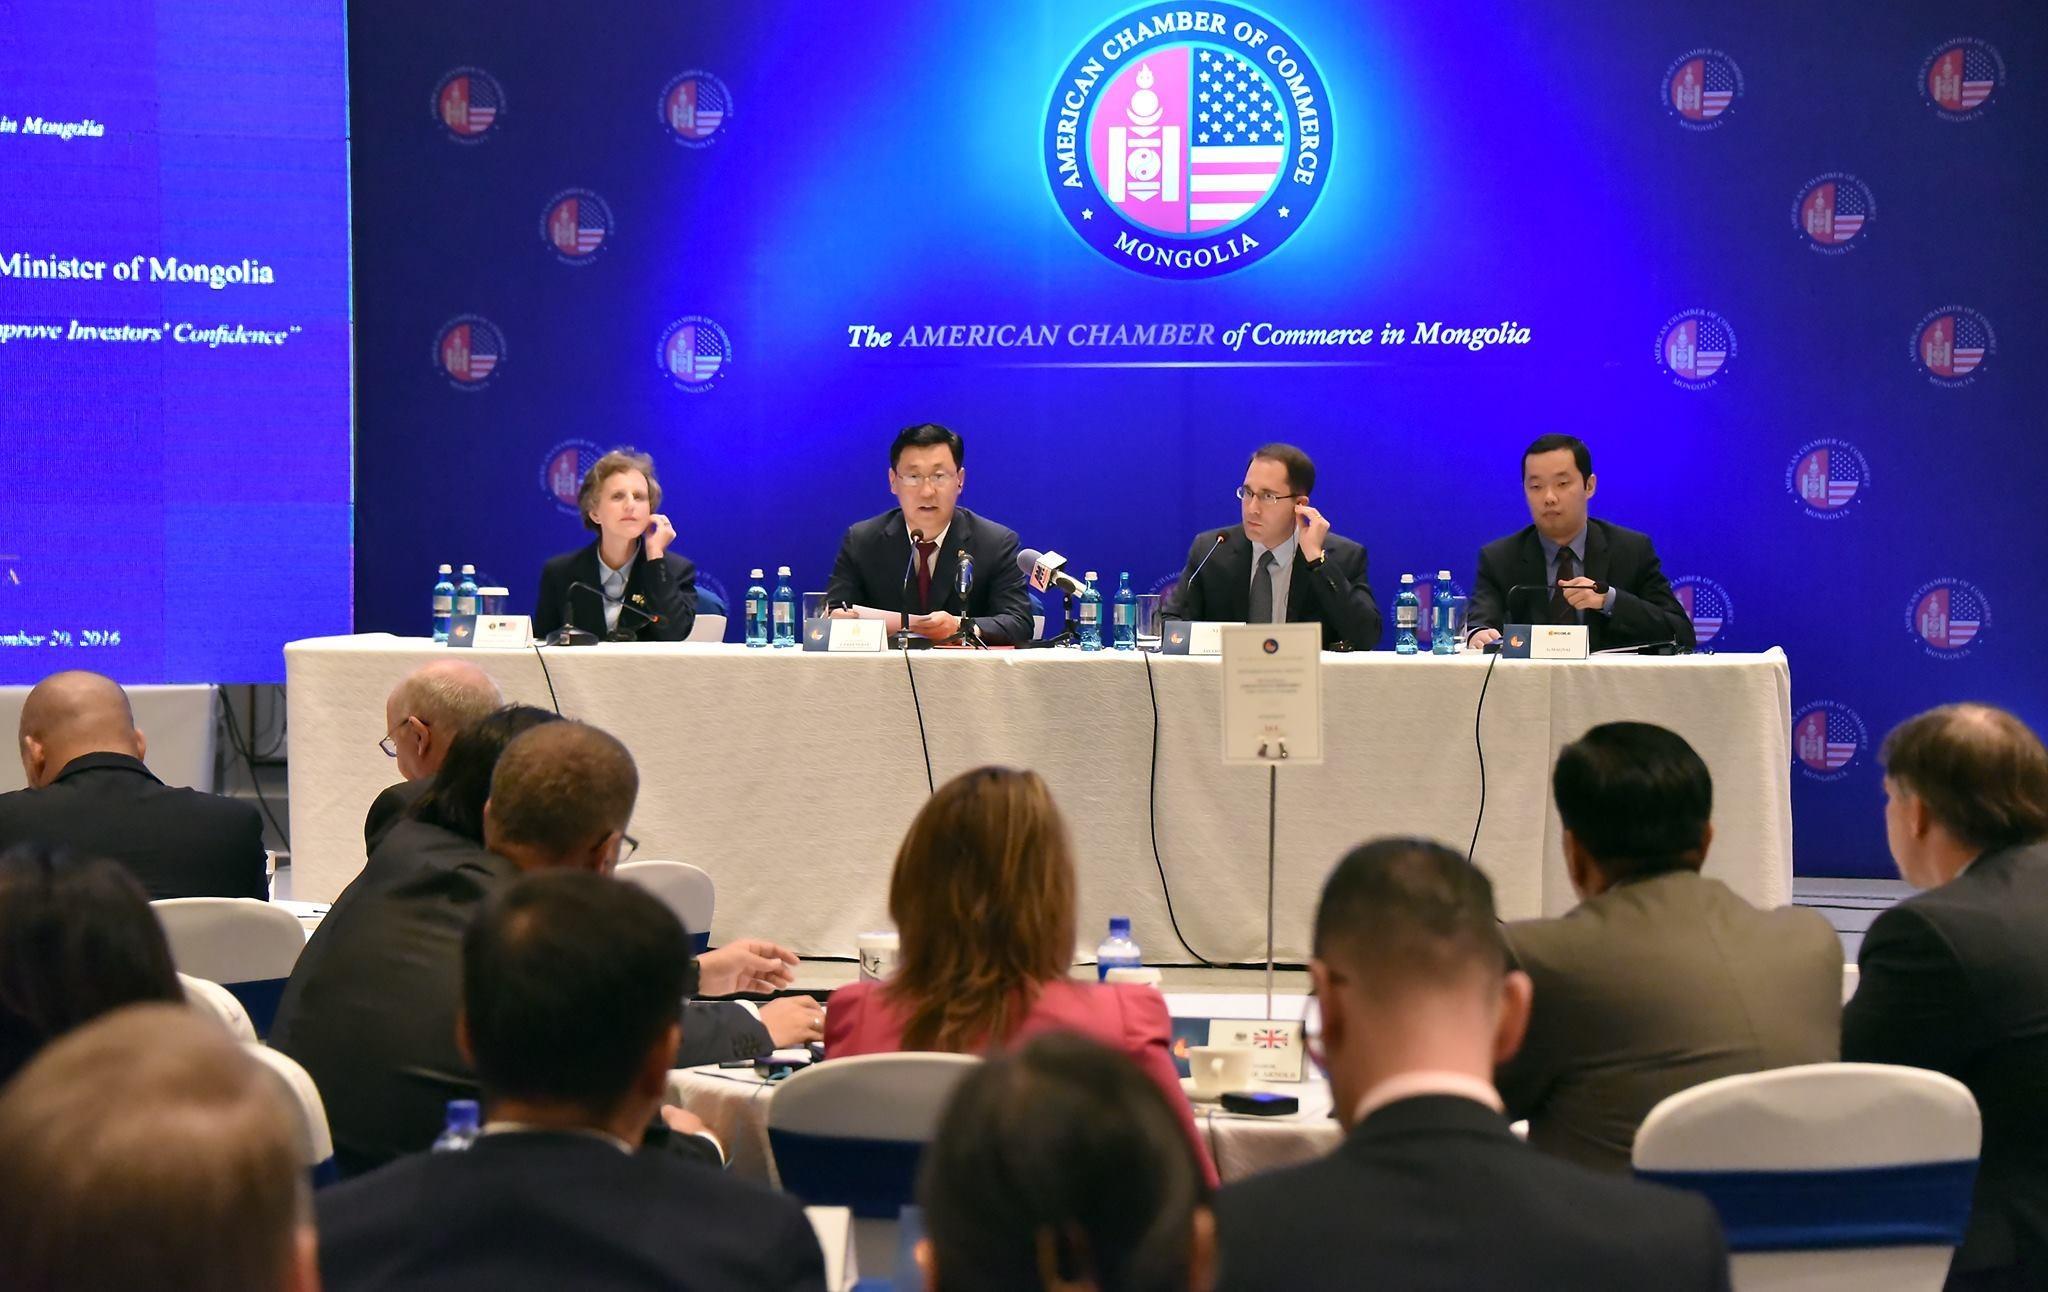 Of mongolia today tomorrow and the development bank of mongolia s - Pm J Erdenebat Mongolia Will Become A Favourable Country For Investment Prime Minister J Erdenebat Attended Amcham Meeting And Gave Remarks On The New